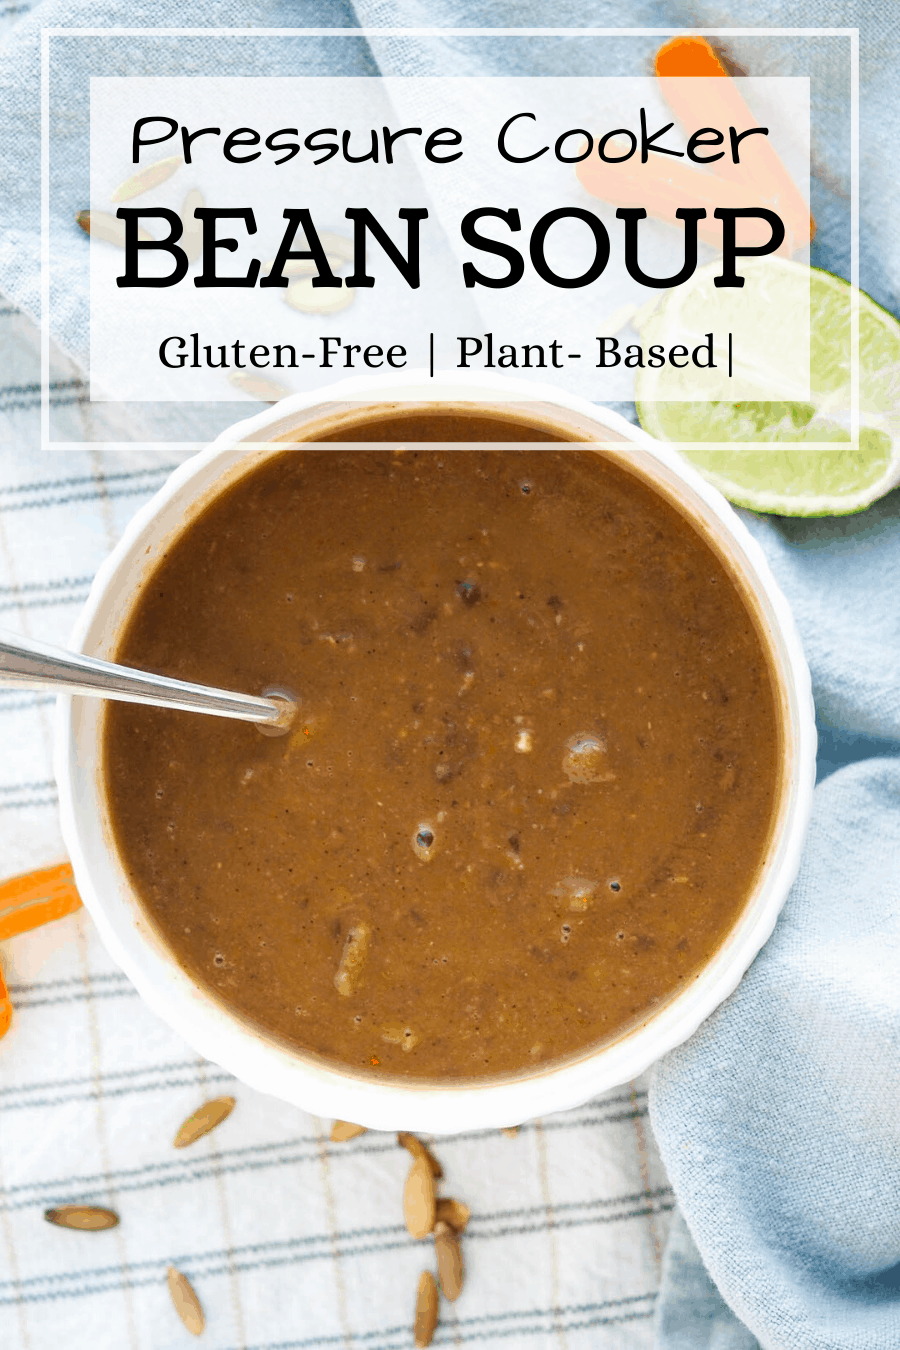 My pinterest pin for pressure cooker bean soup. A large white bowl of bean soup sits on two dish towels along side limes and carrots.